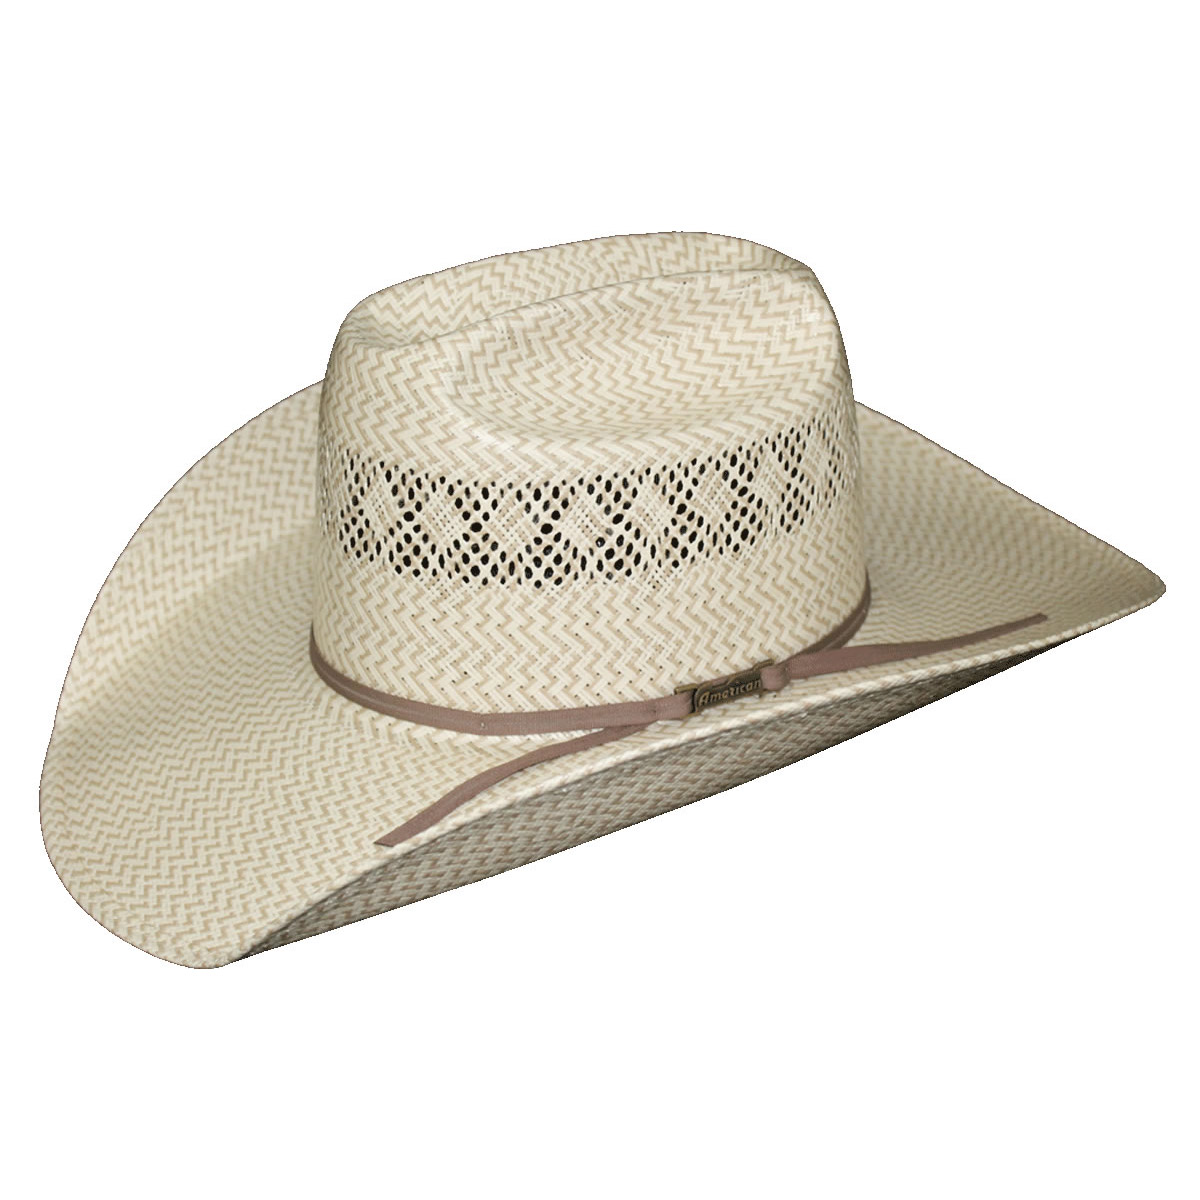 c188ca0aca0 American Hat Co 20☆ Fancy Vent   Weave Two-Tone Straw Hat - Tan. Tap to  expand